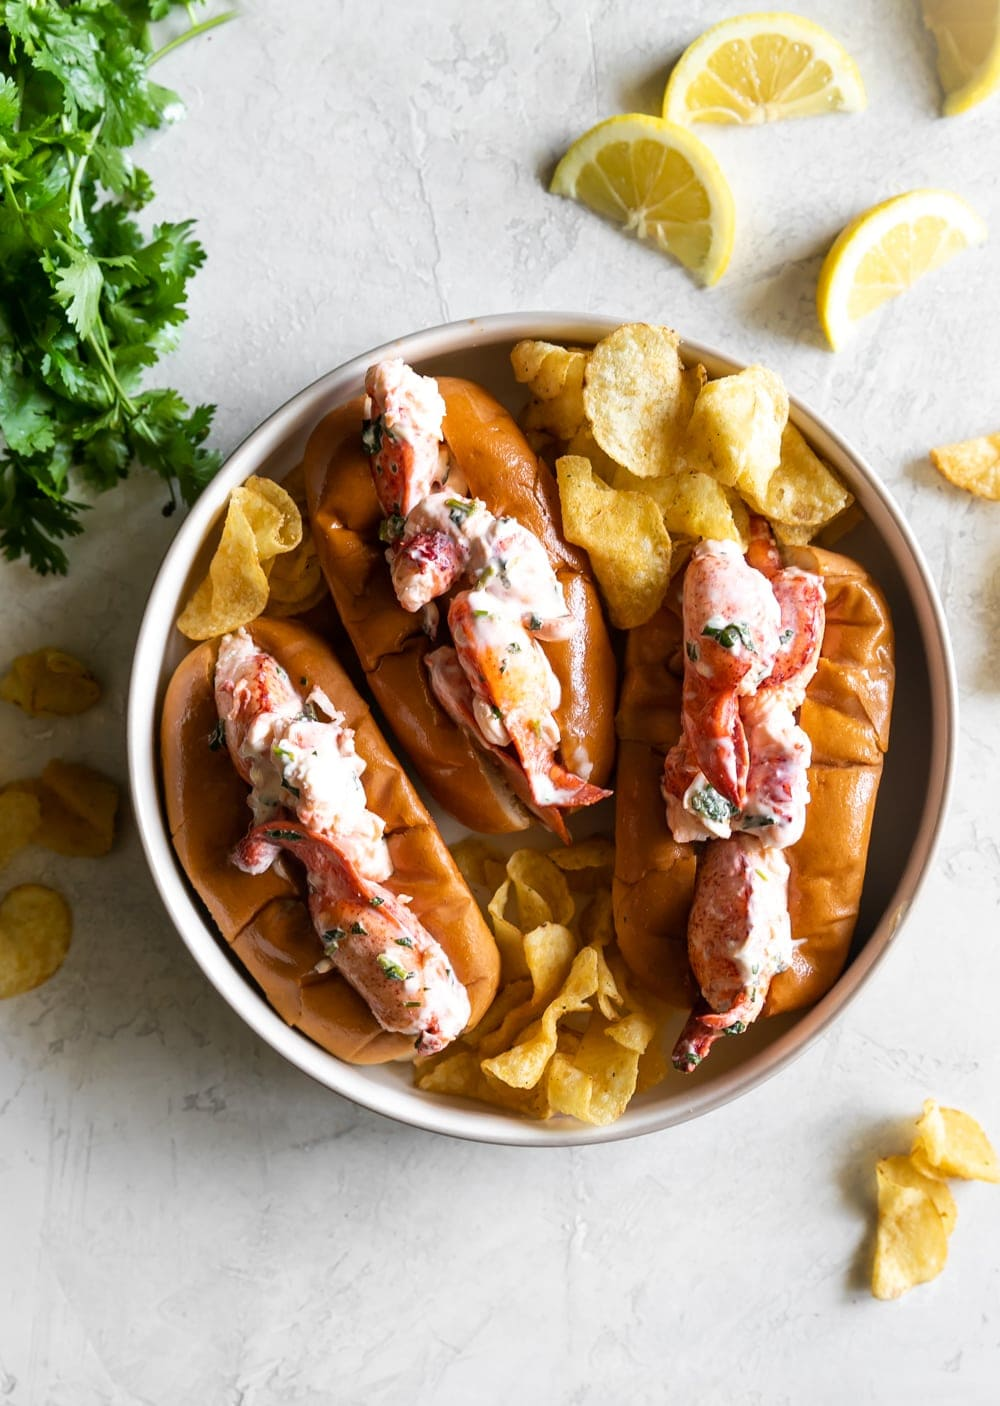 top view of maine lobster rolls with kettle cooked chips and lemon slices on buttered toasted buns